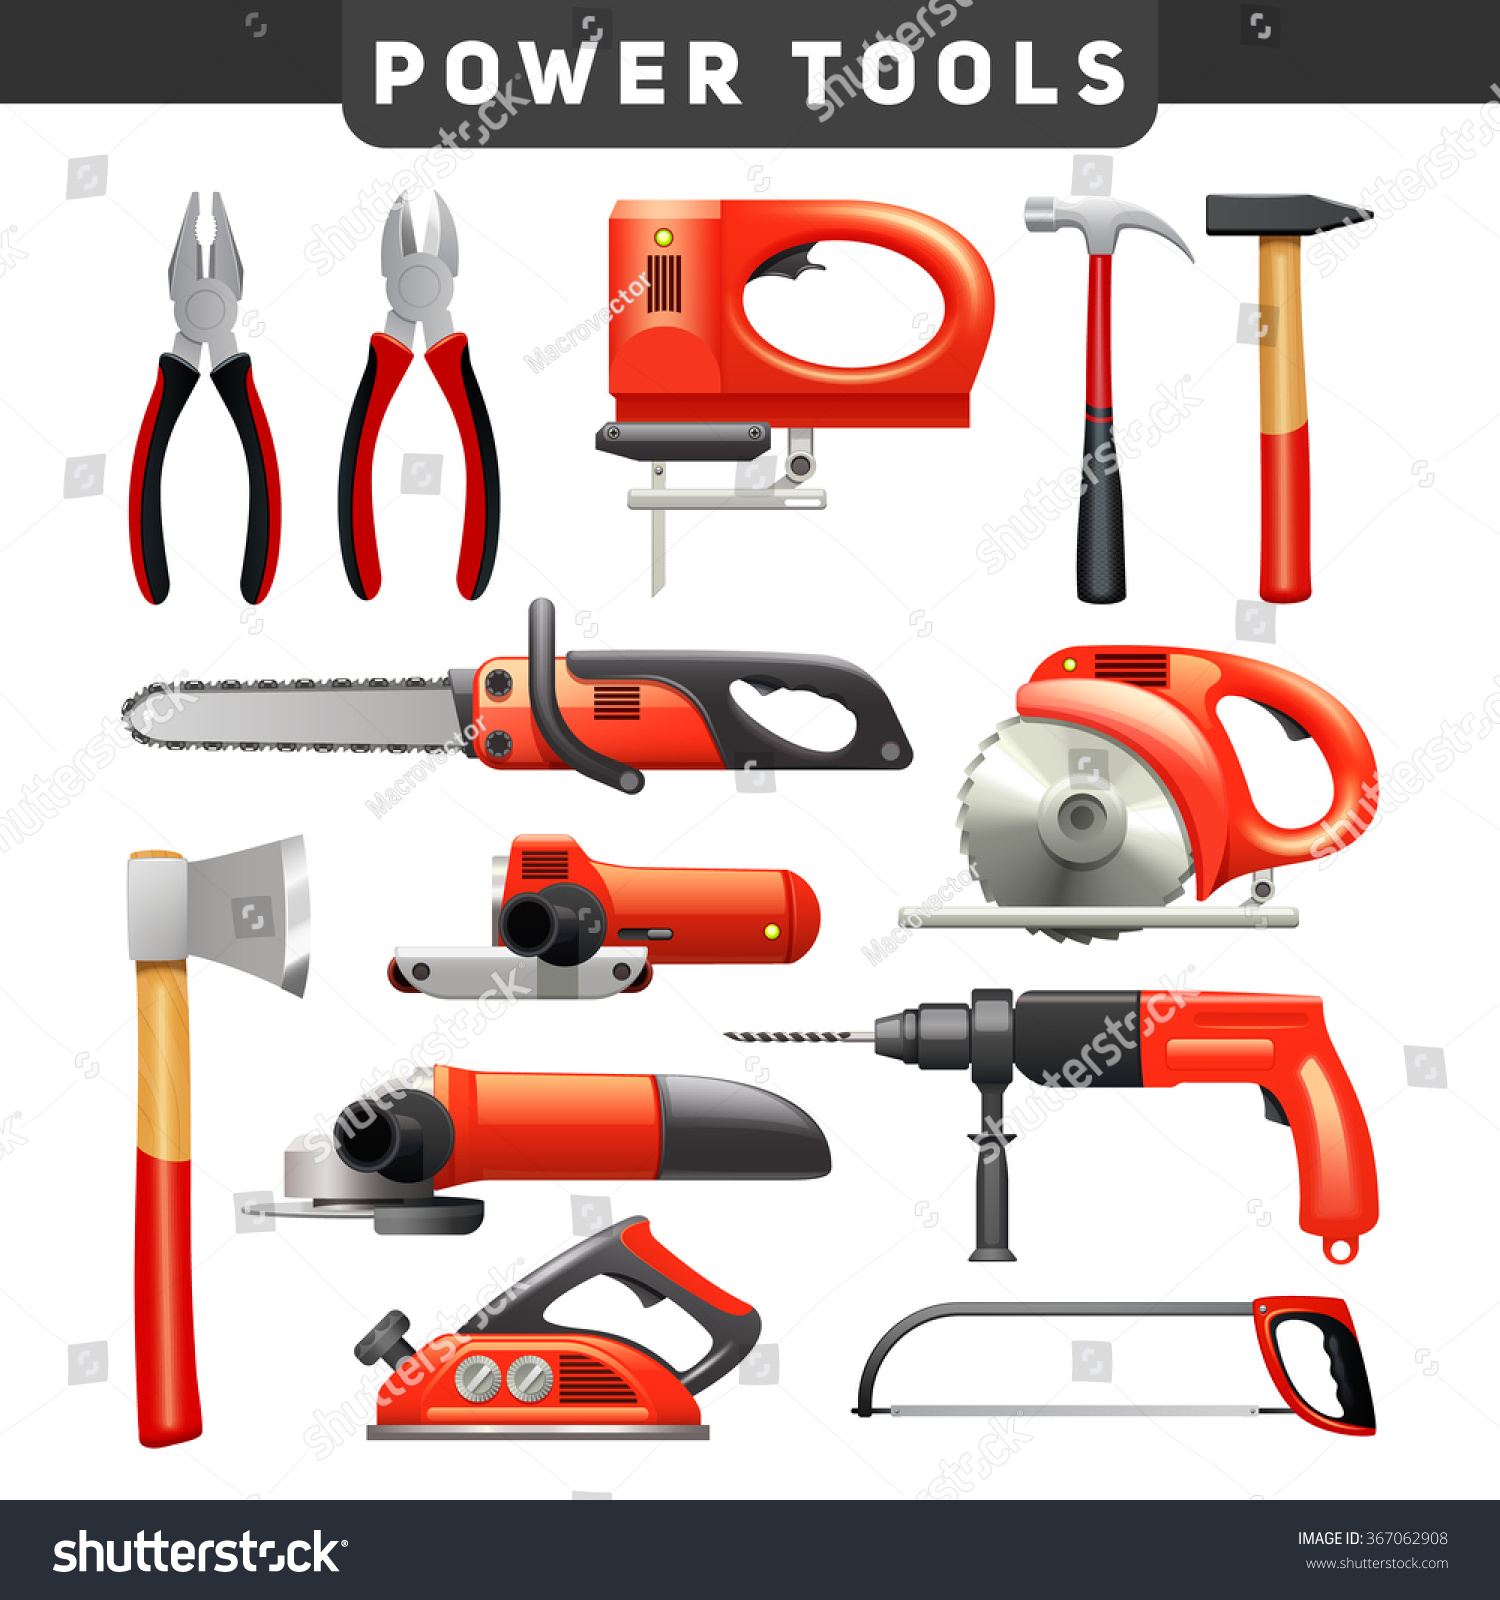 Carpenter power tools - photo#28